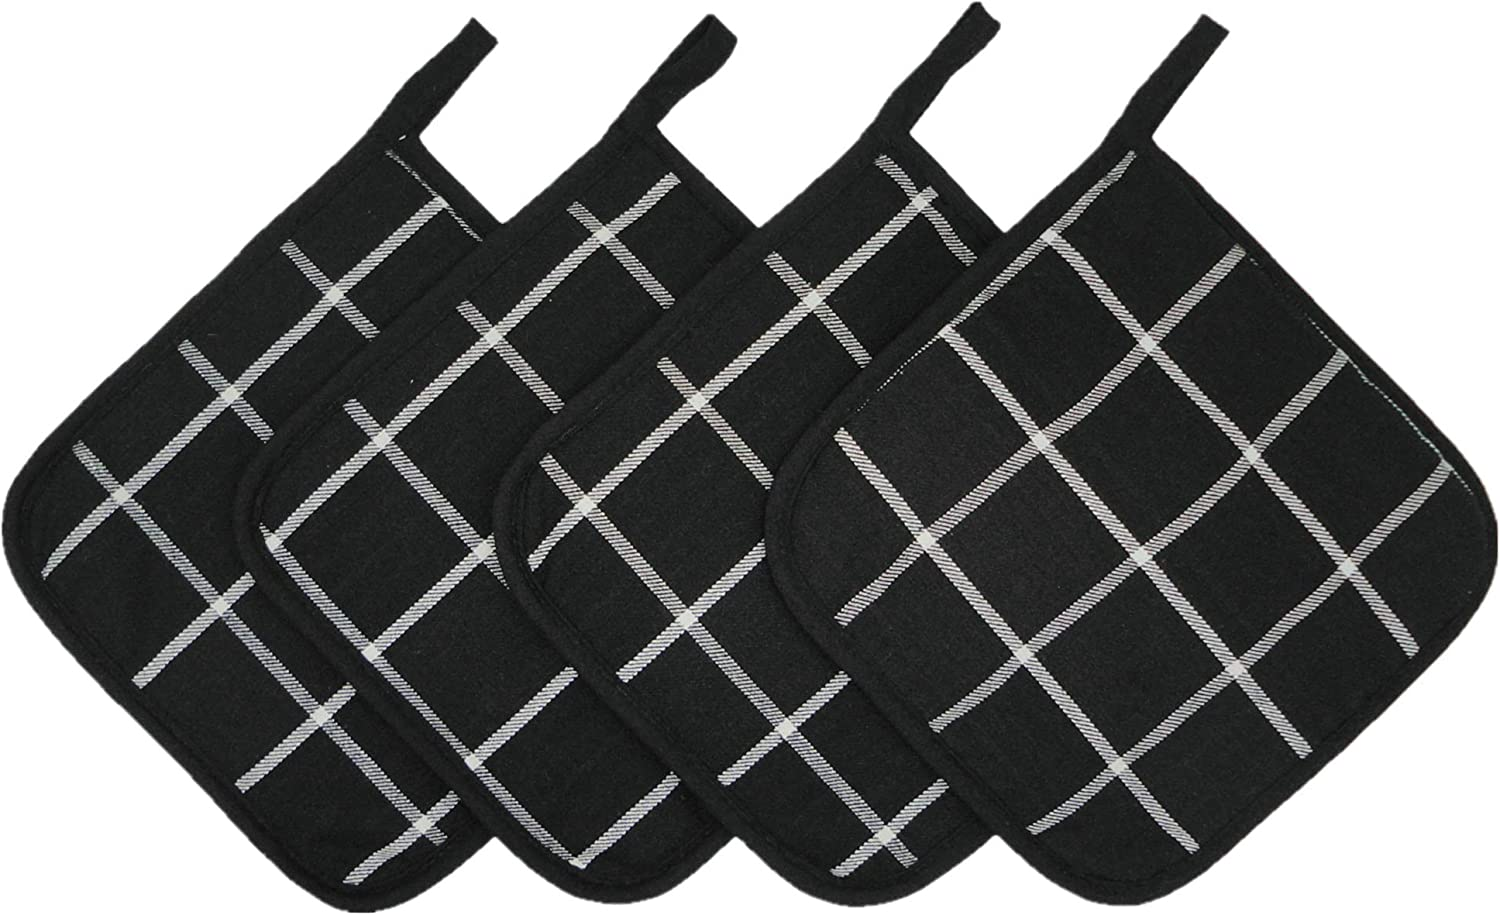 Cotton Quilted Pot Holders for Kitchen Heat Resistant Hot Pads Set for Cooking Grilling Barbeque Baking 7Inch x 7Inch Set of 4 (Black Suqare)